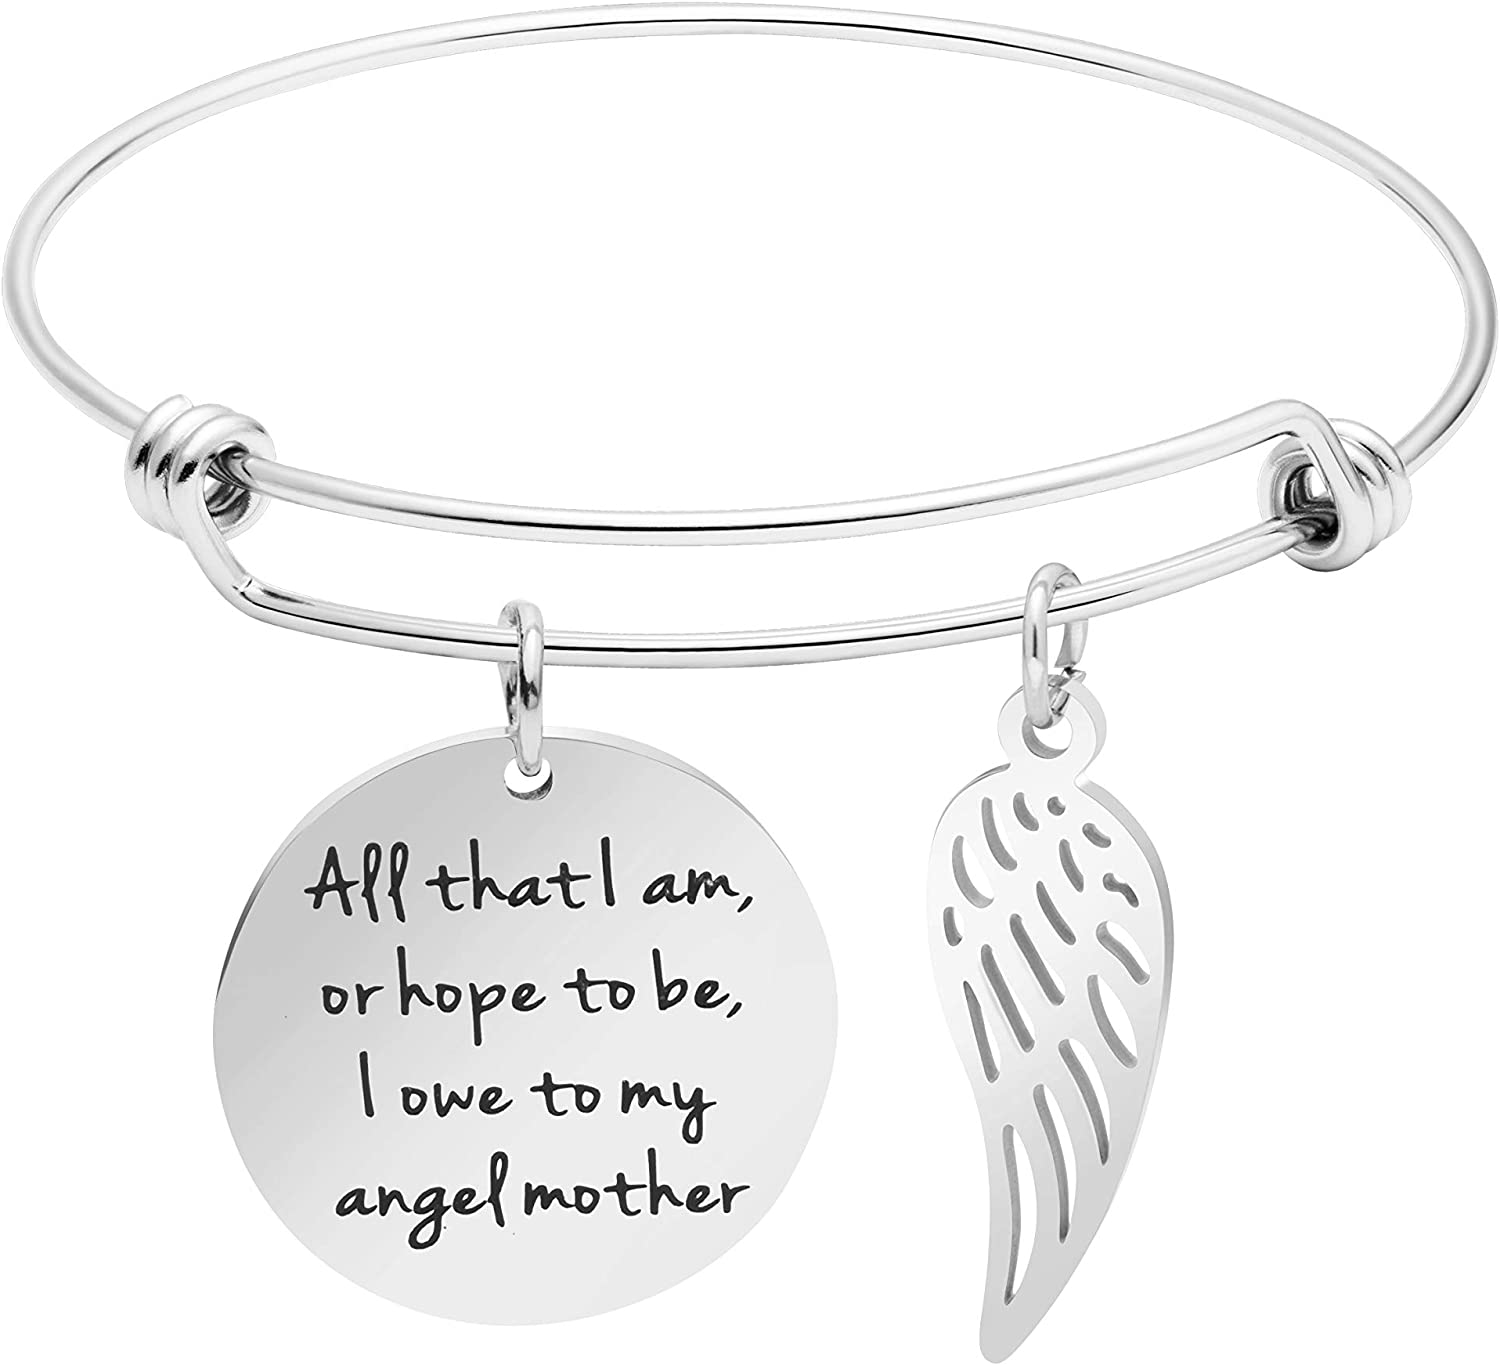 All That I am or Hope to be I owe to My Angel Mother Mom Gift from Daughter or Son Quote Jewelry Mantra Cuff Bangle Bracelet